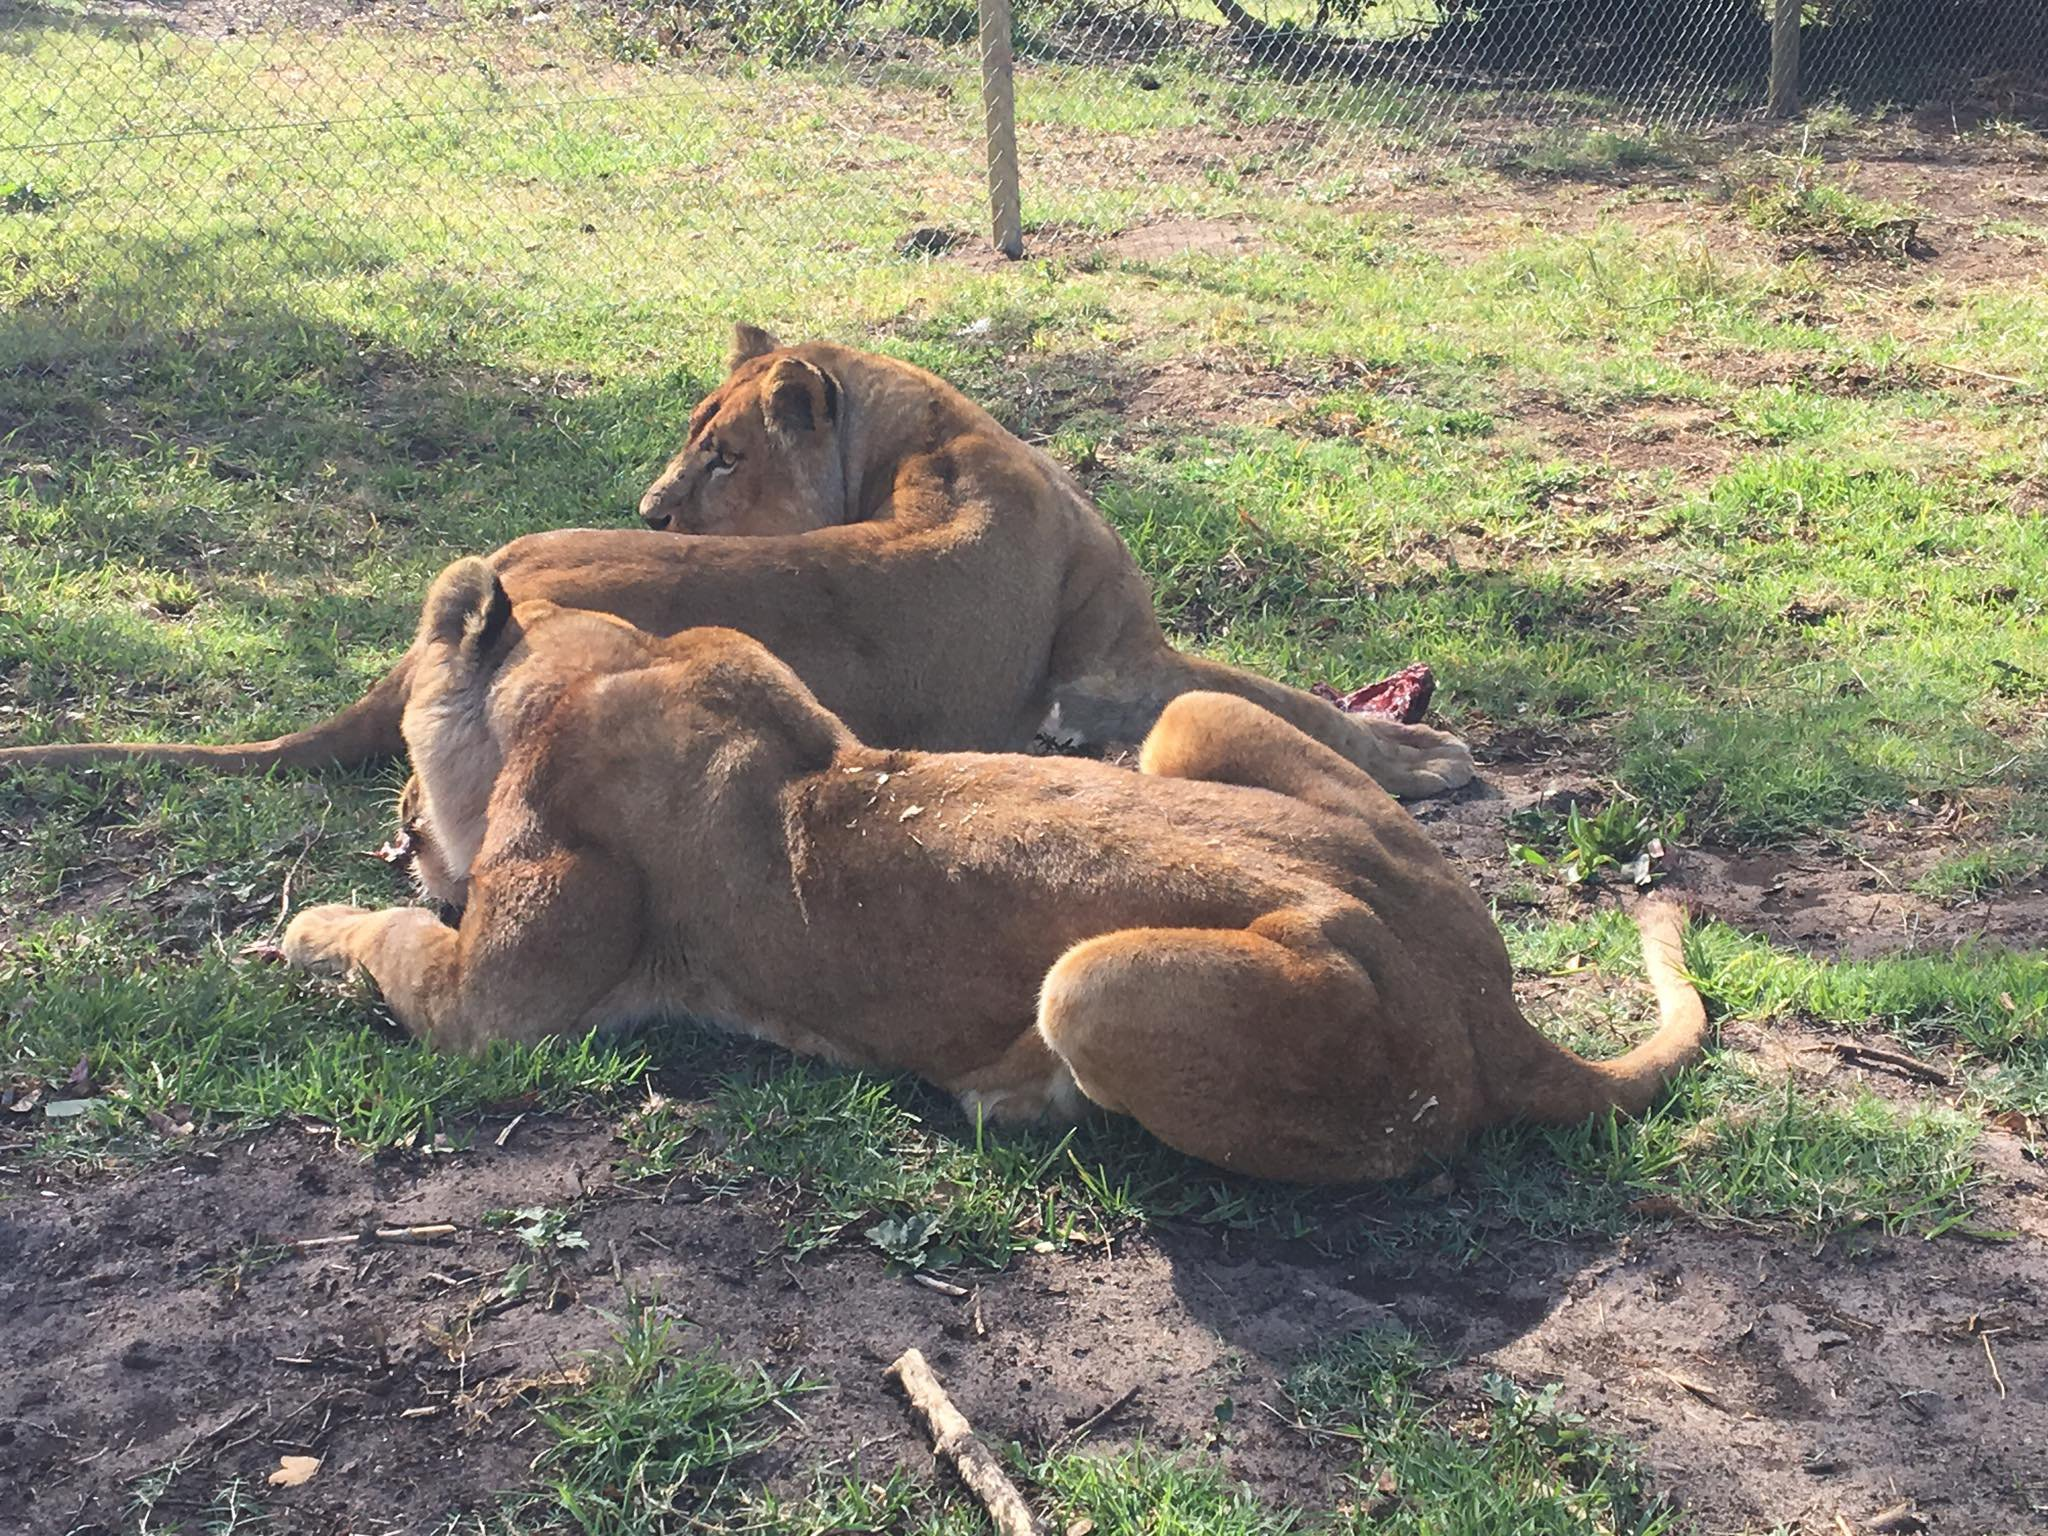 Former circus lions take their first steps of freedom after being rescued from captivity